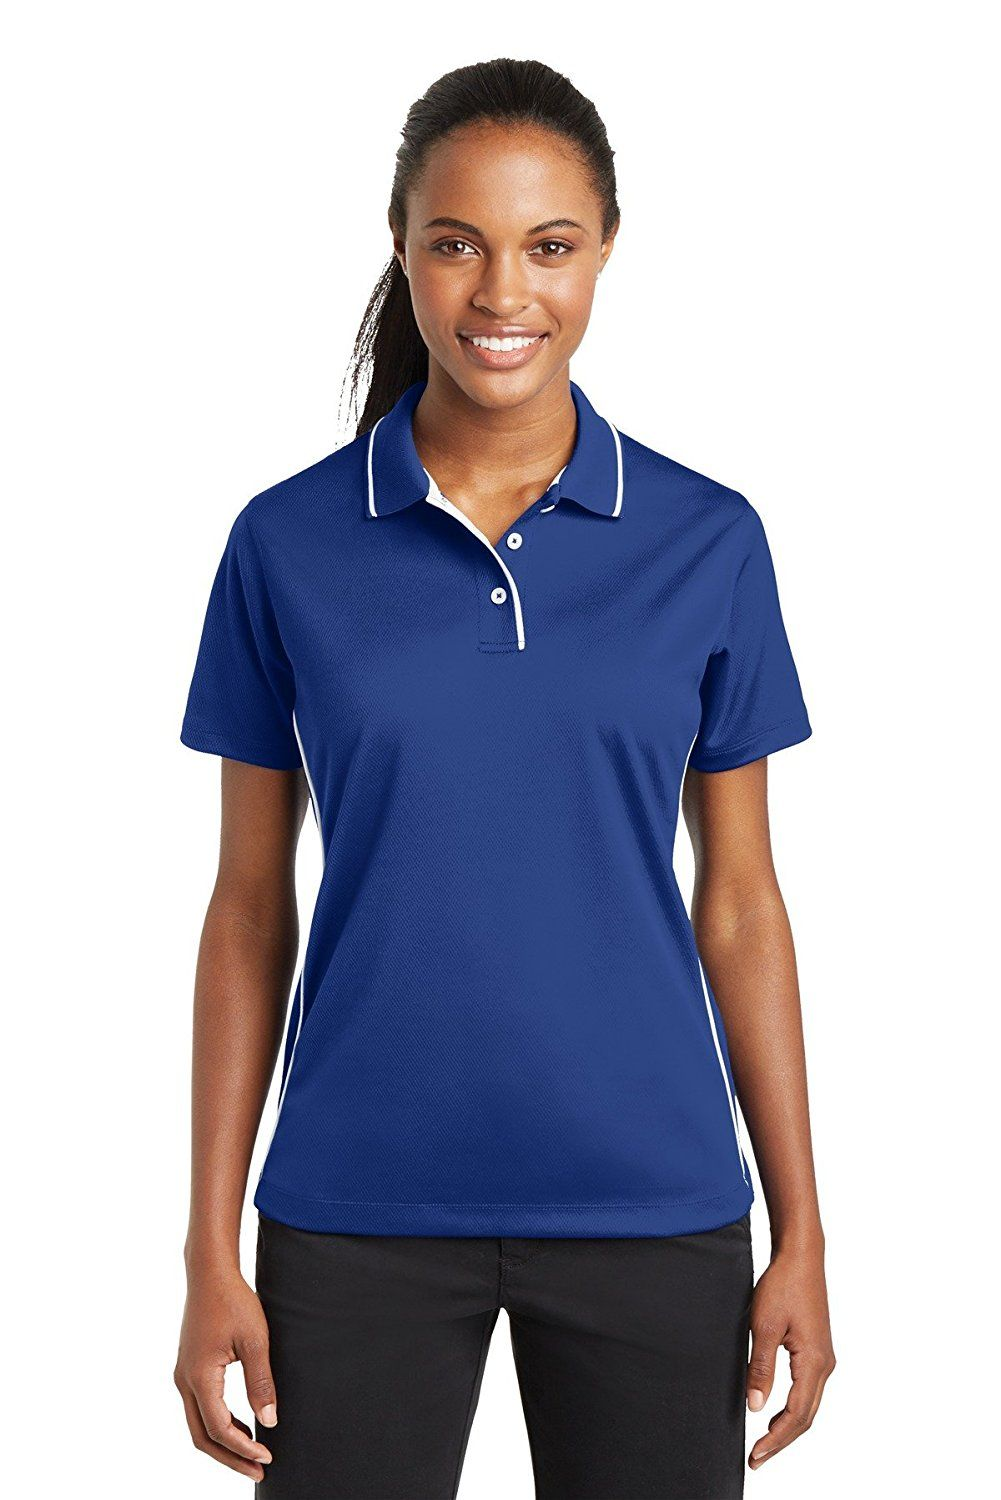 SportTek Women's Dri Mesh Polo with Tipped Collar and